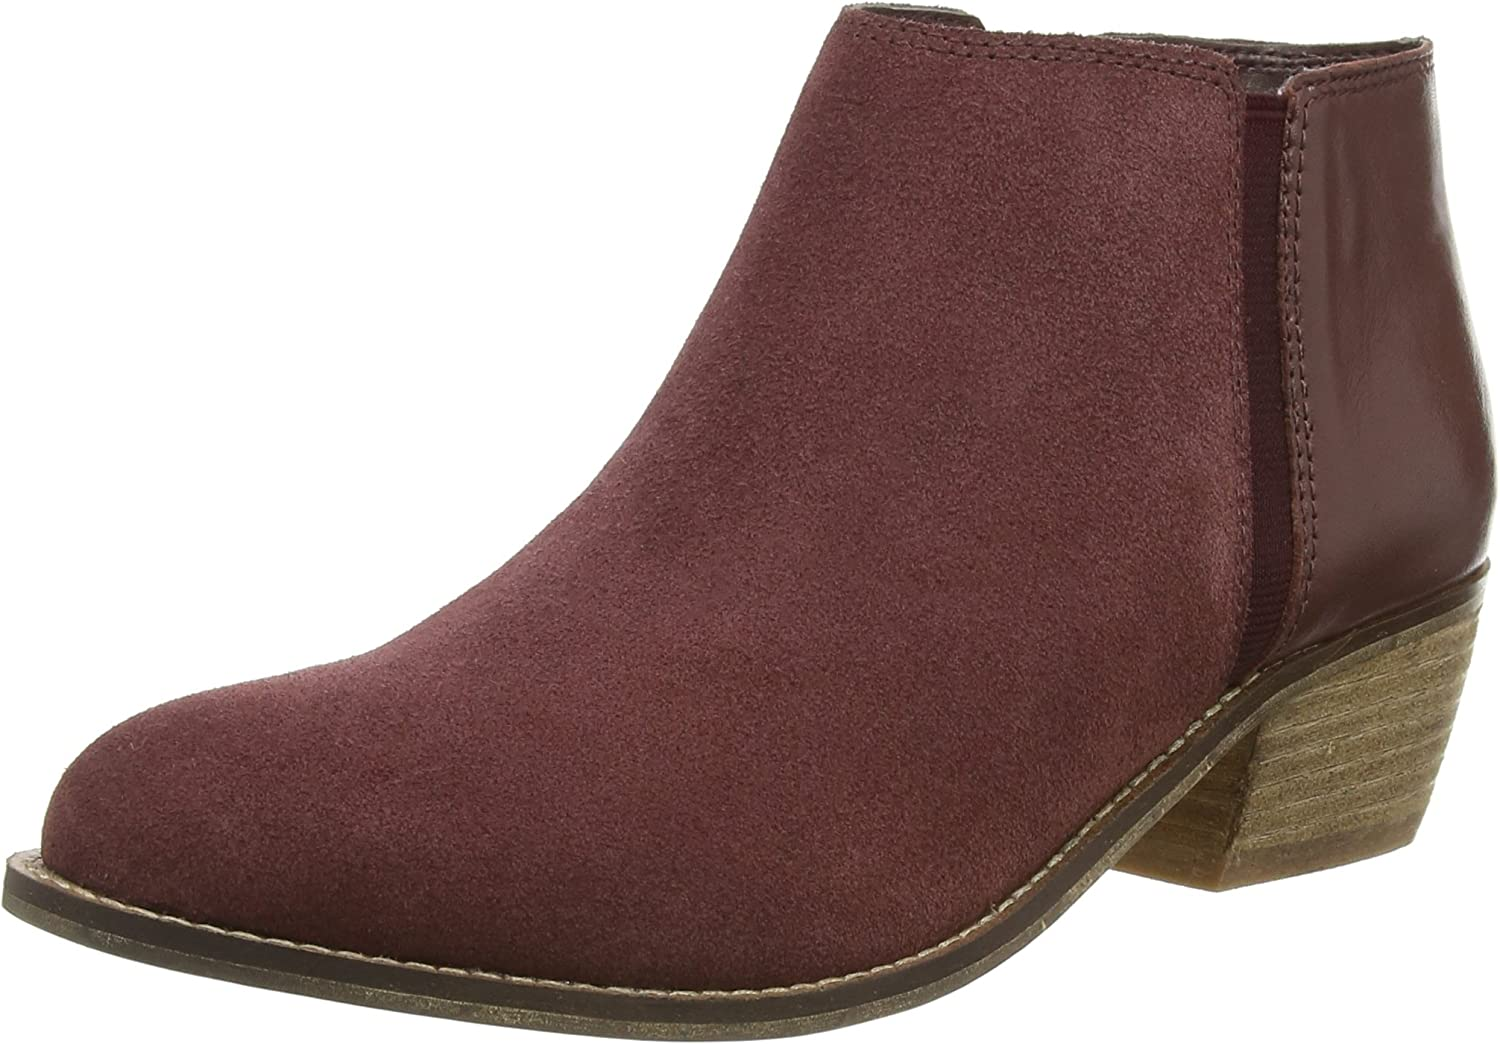 burgundy chelsea boots womens suede